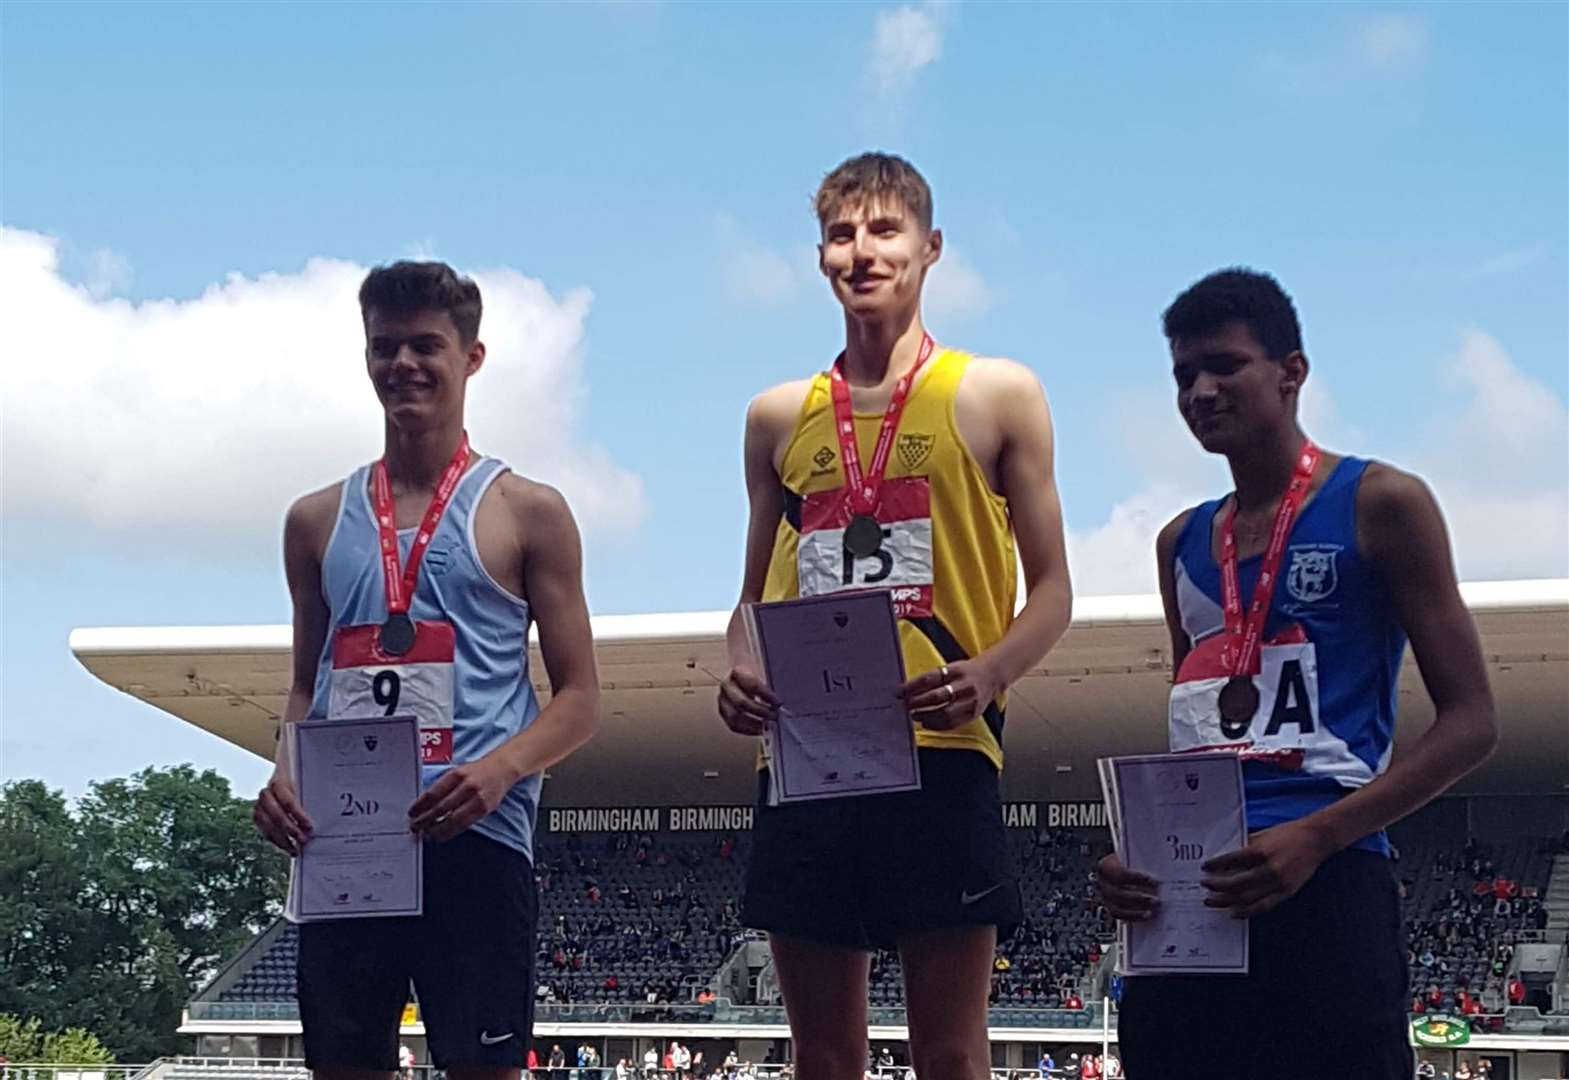 Charlie Knott and Alex Melloy in the medals representing England at SIAB International